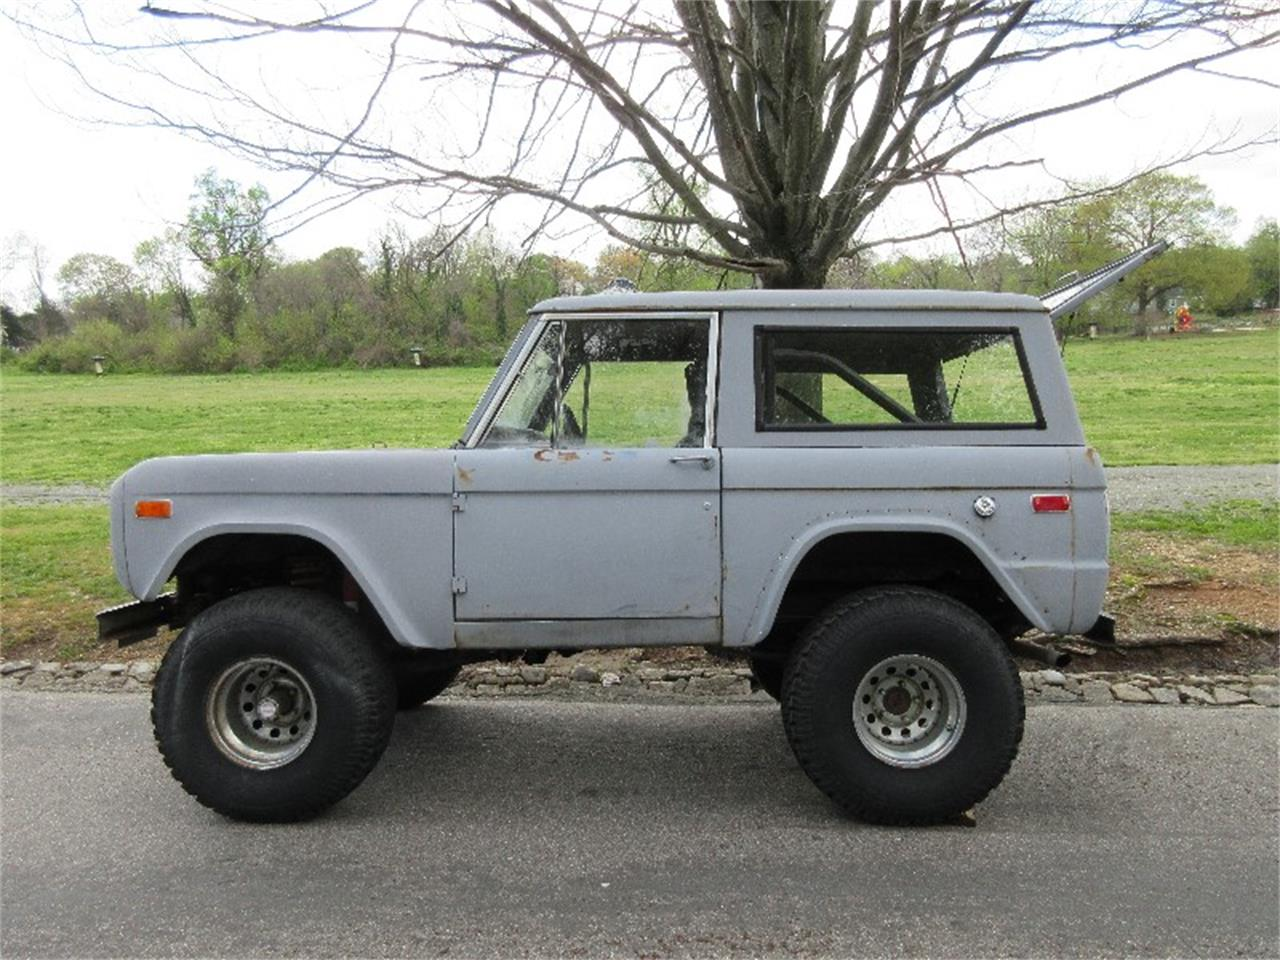 For Sale: 14 Ford Bronco in Richmond, Virginia | ford bronco for sale